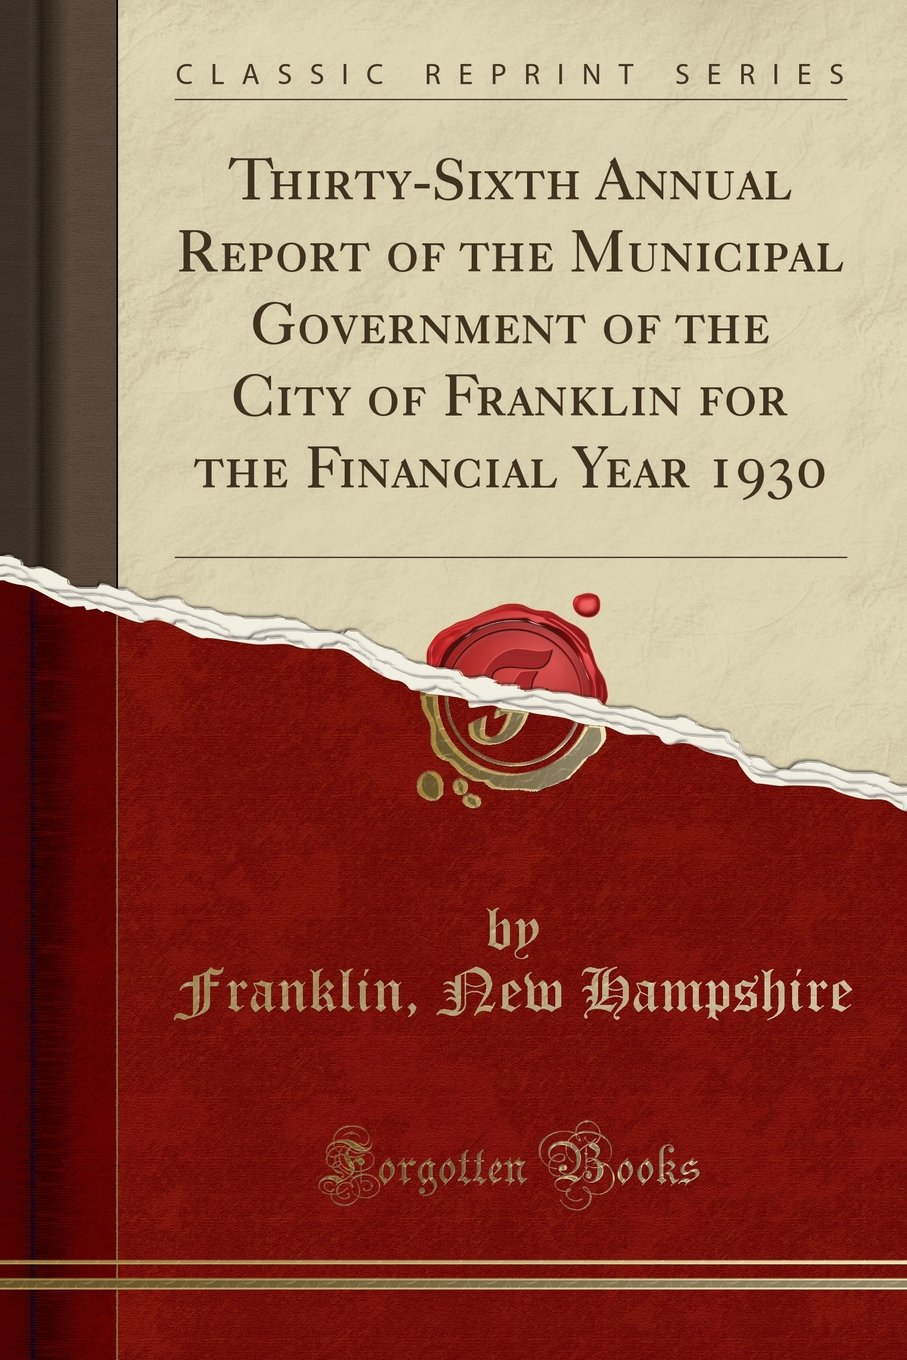 Read Online Thirty-Sixth Annual Report of the Municipal Government of the City of Franklin for the Financial Year 1930 (Classic Reprint) ebook